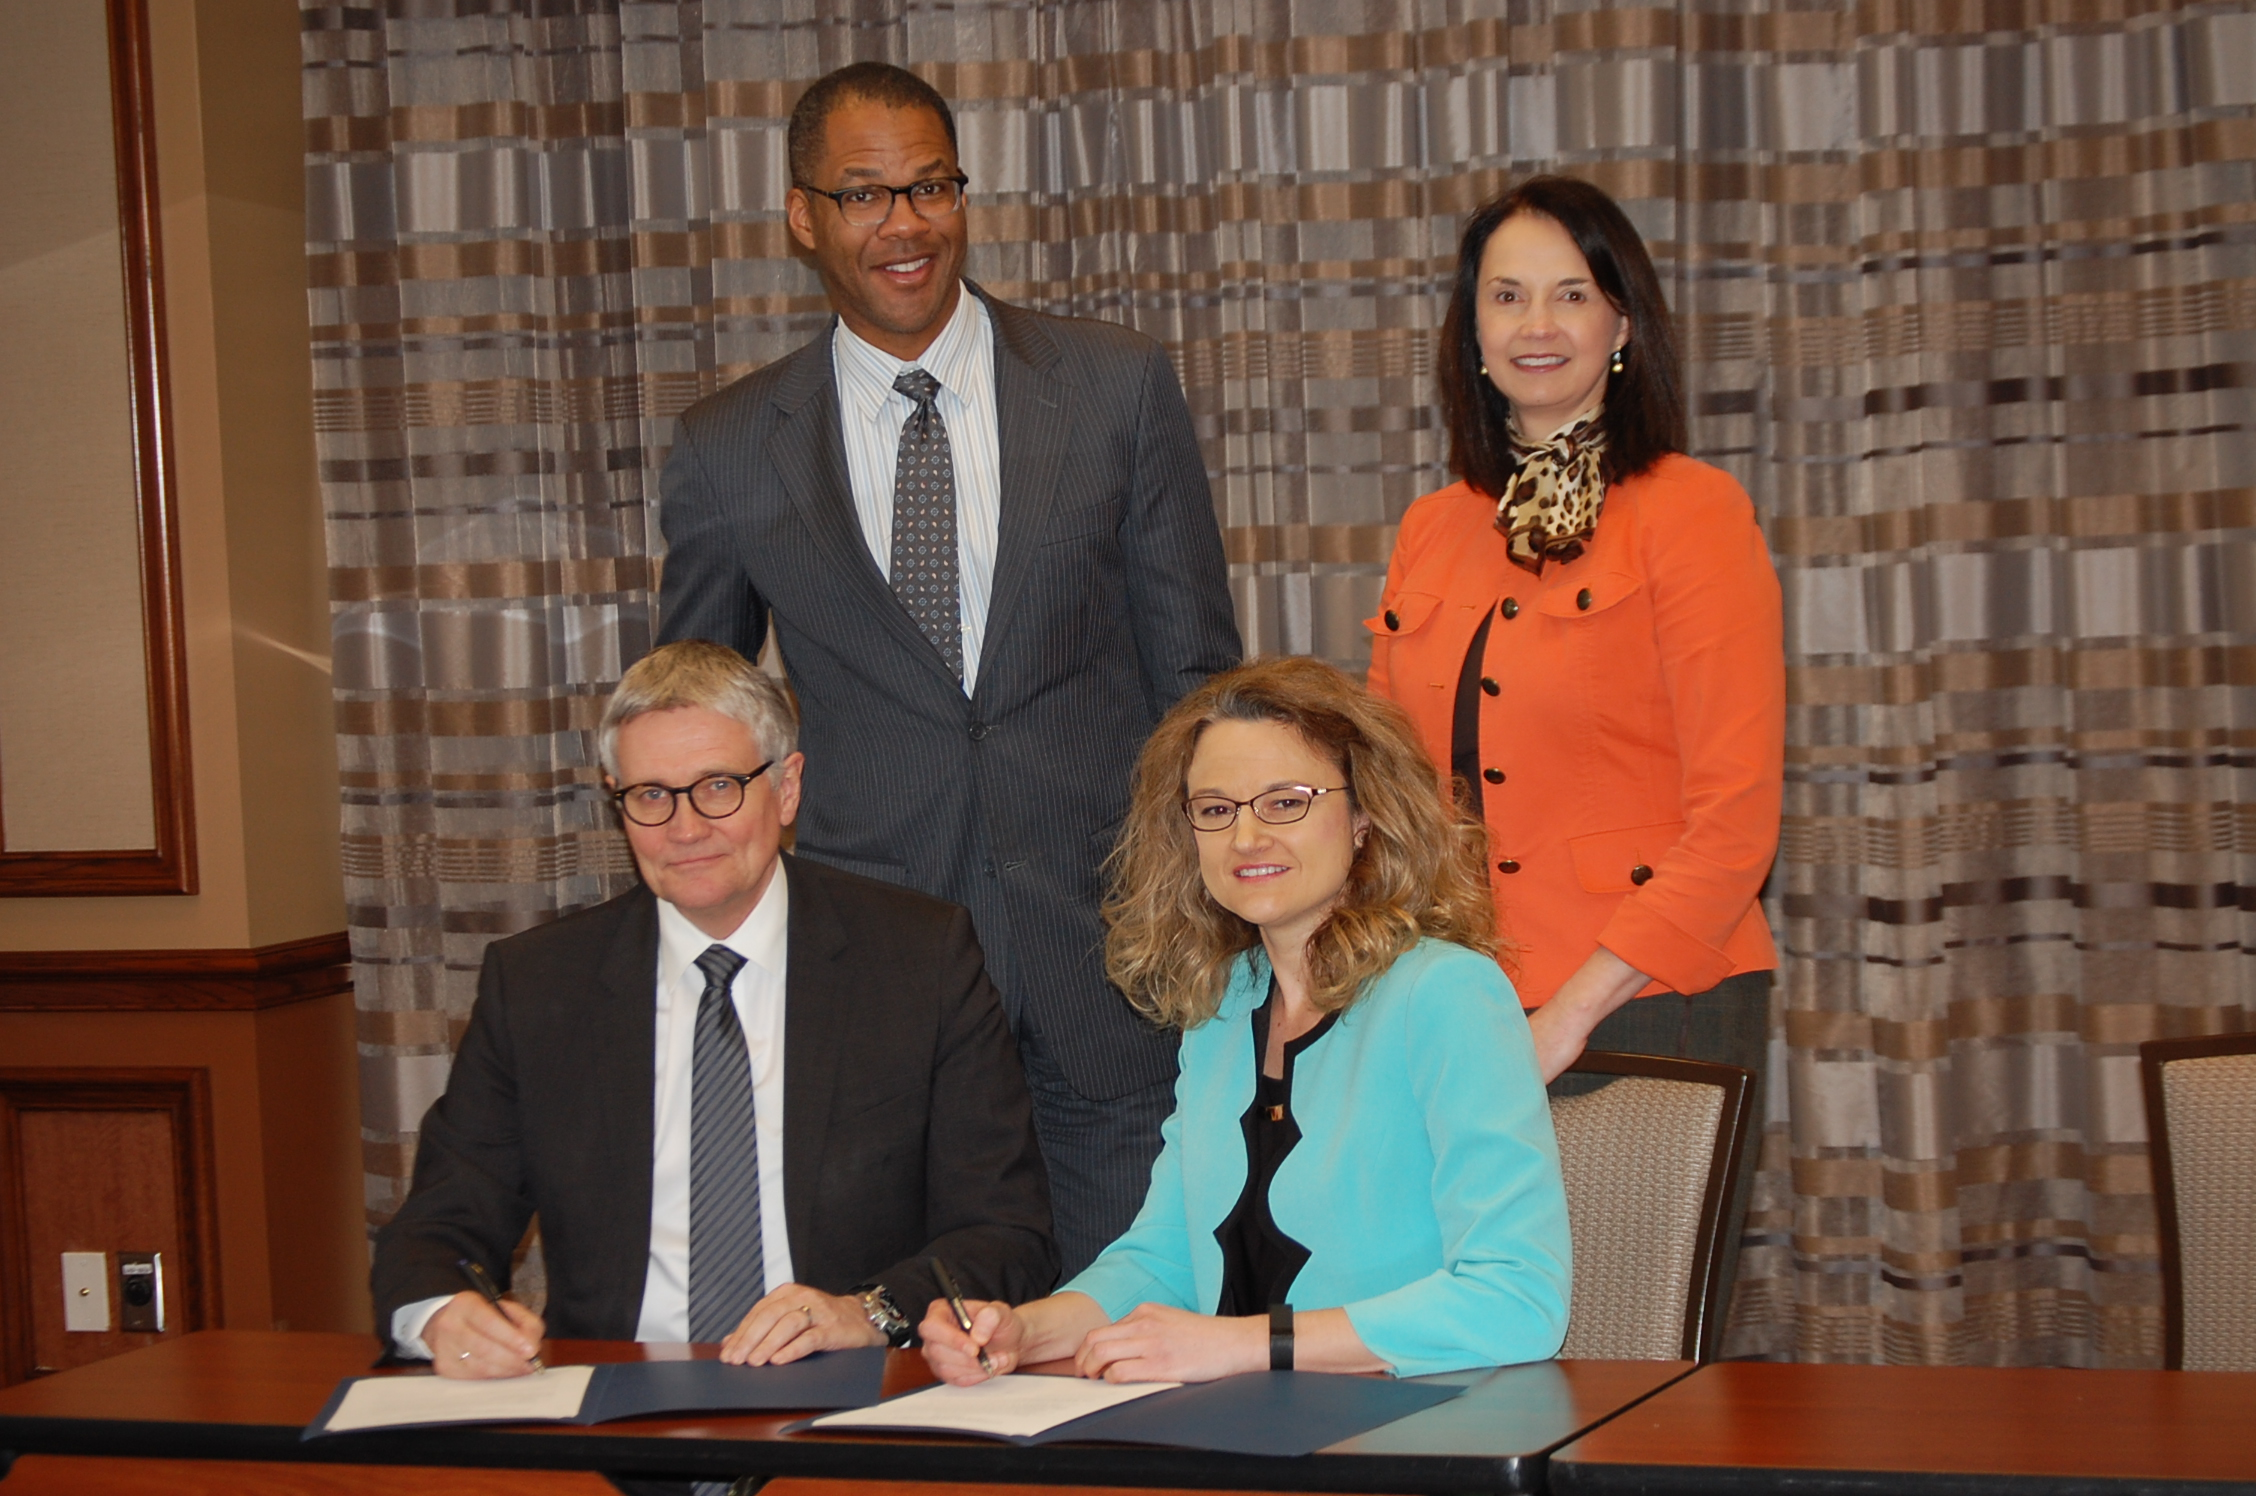 DOE Assistant Secretary of Fossil Energy Chris Brown and Chief Operating Officer Kim Greene (standing) join TCM Managing Director Roy Vardhiem and National Carbon Capture Center Director Roxann Laird (seated) in transferring the ITCN chairmanship and operation for the next two years.